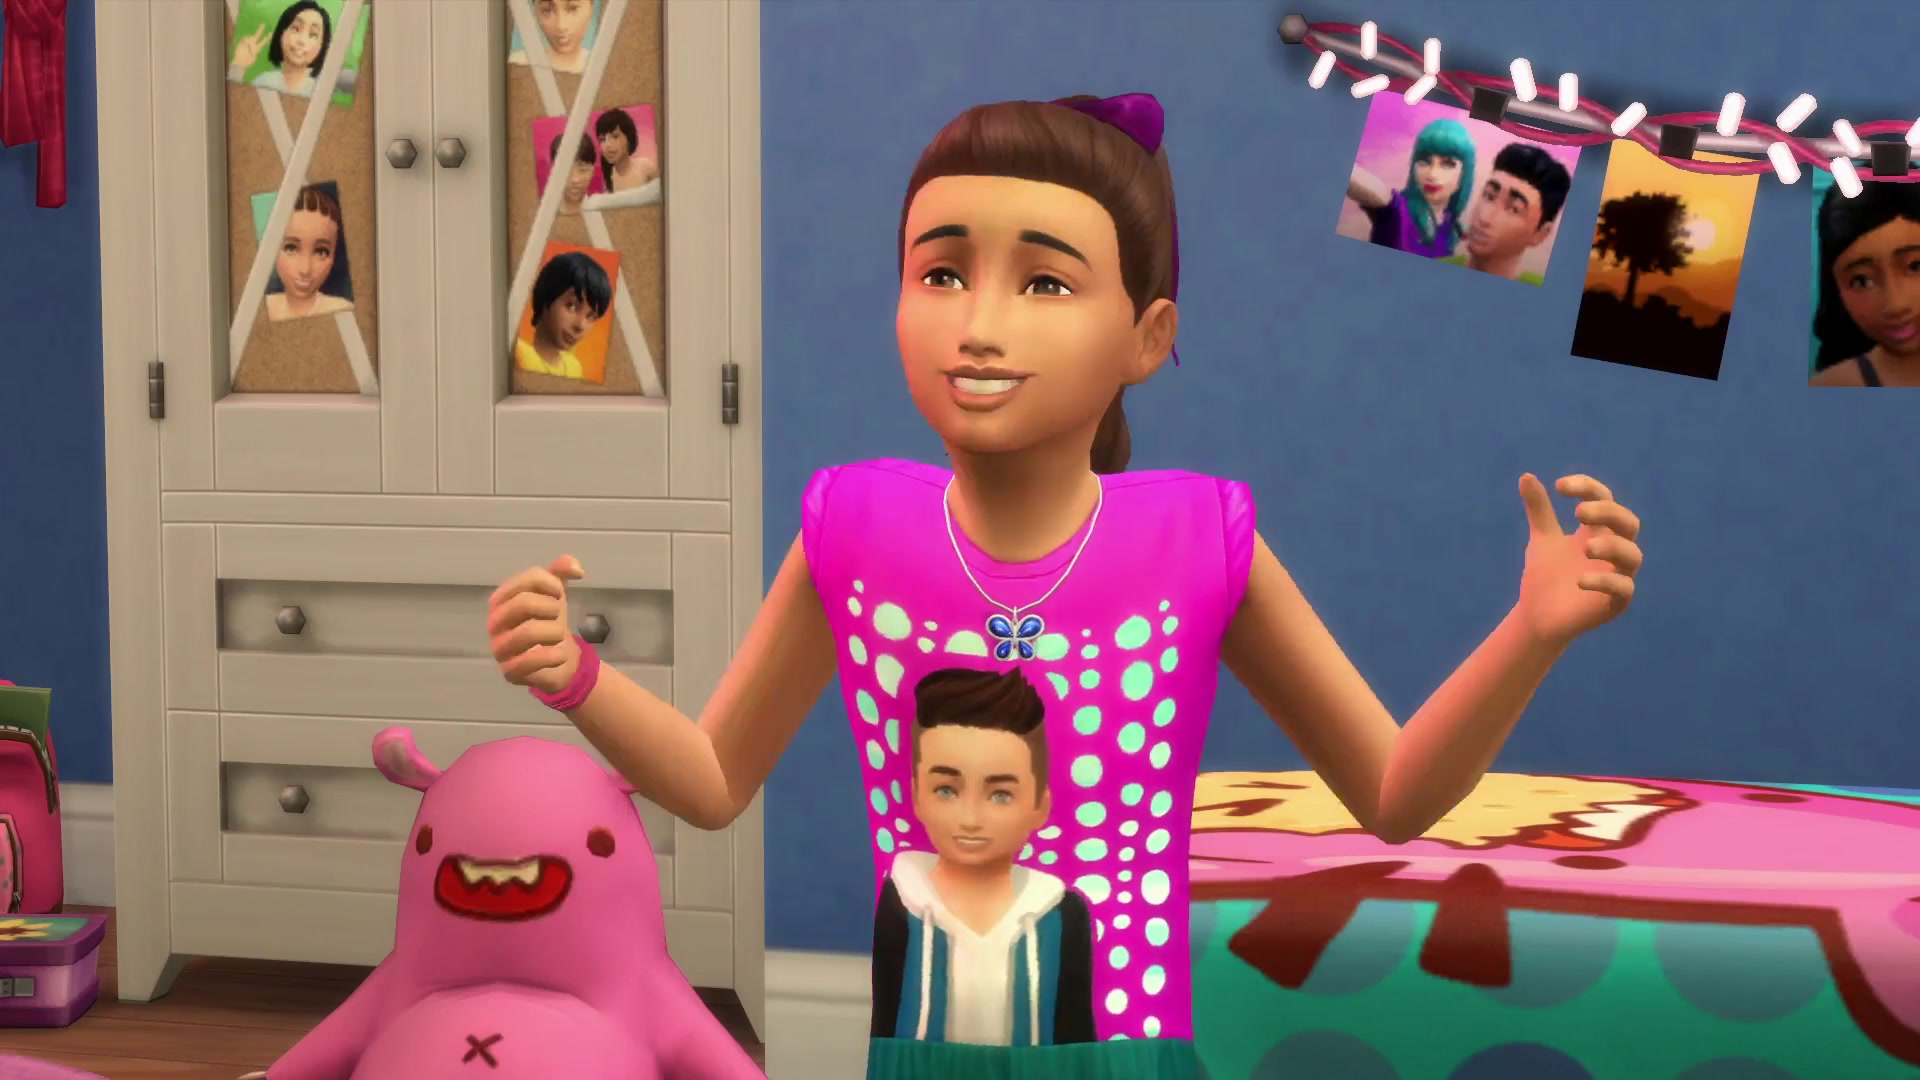 The sims 4 kids room stuff 50 trailer screens simsvip for Rooms 4 kids